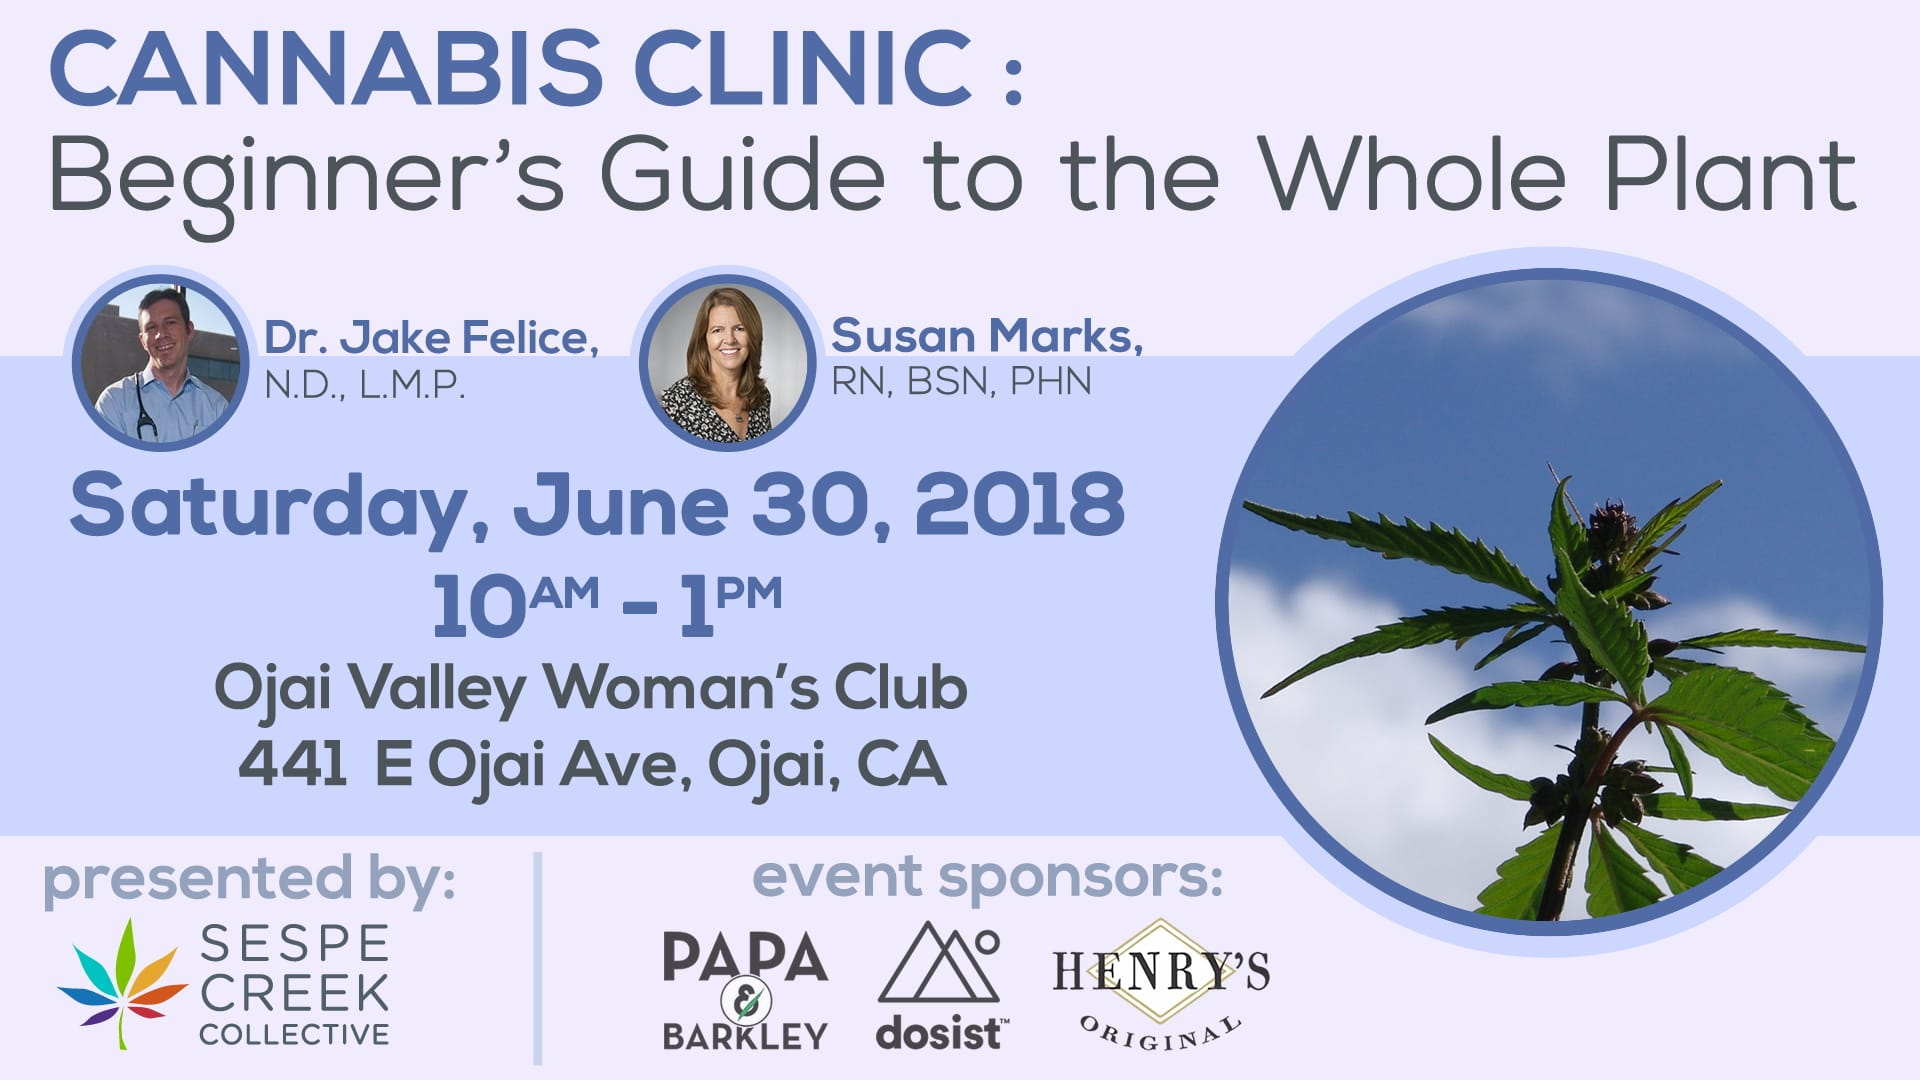 Cannabis Clinic: Beginner's Guide to the Whole Plant